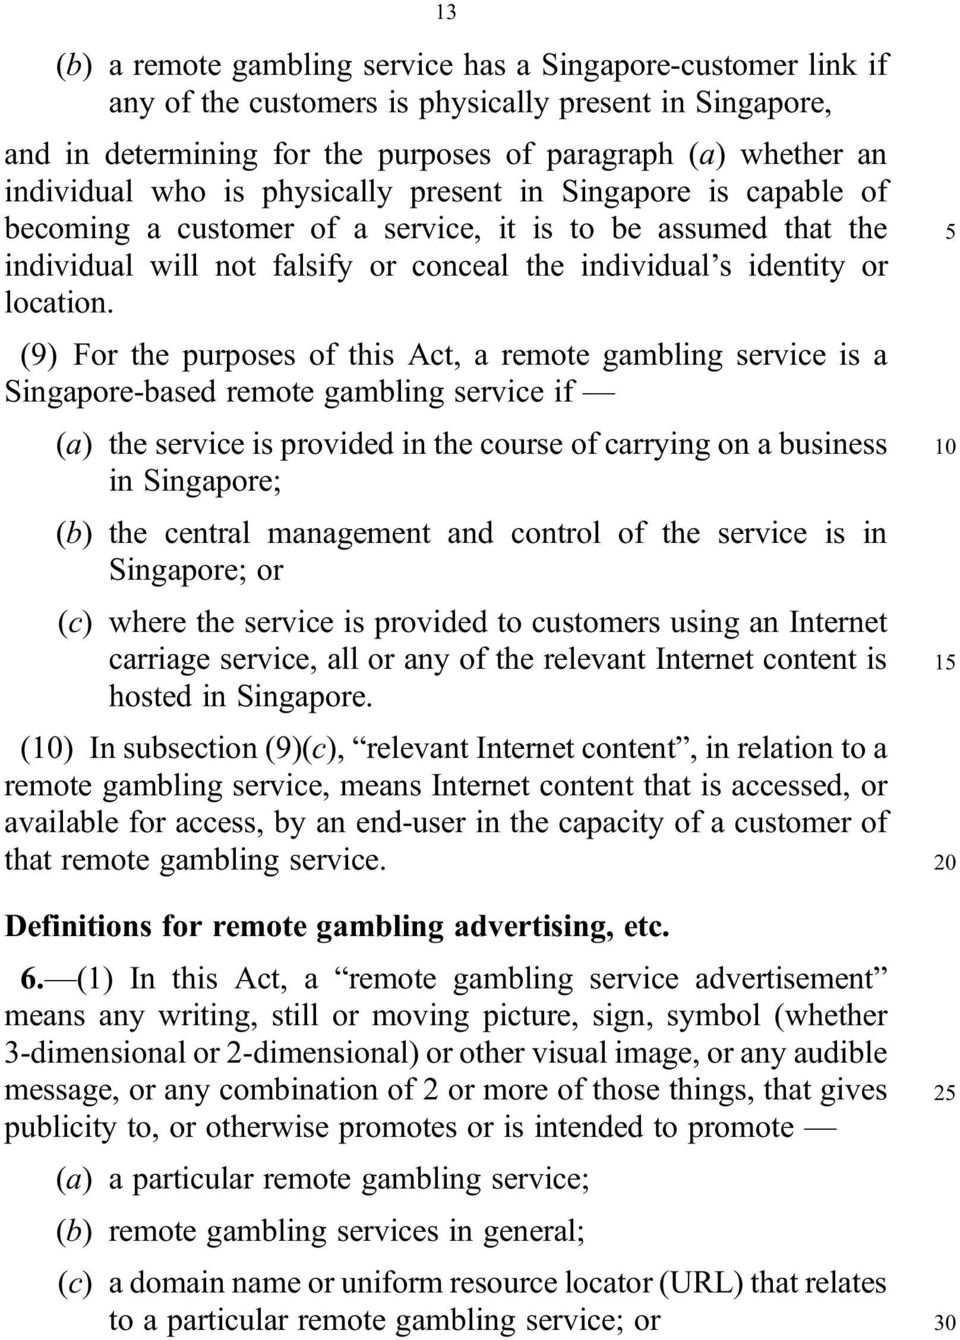 (9) For the purposes of this Act, a remote gambling service is a Singapore-based remote gambling service if (a) the service is provided in the course of carrying on a business in Singapore; (b) the